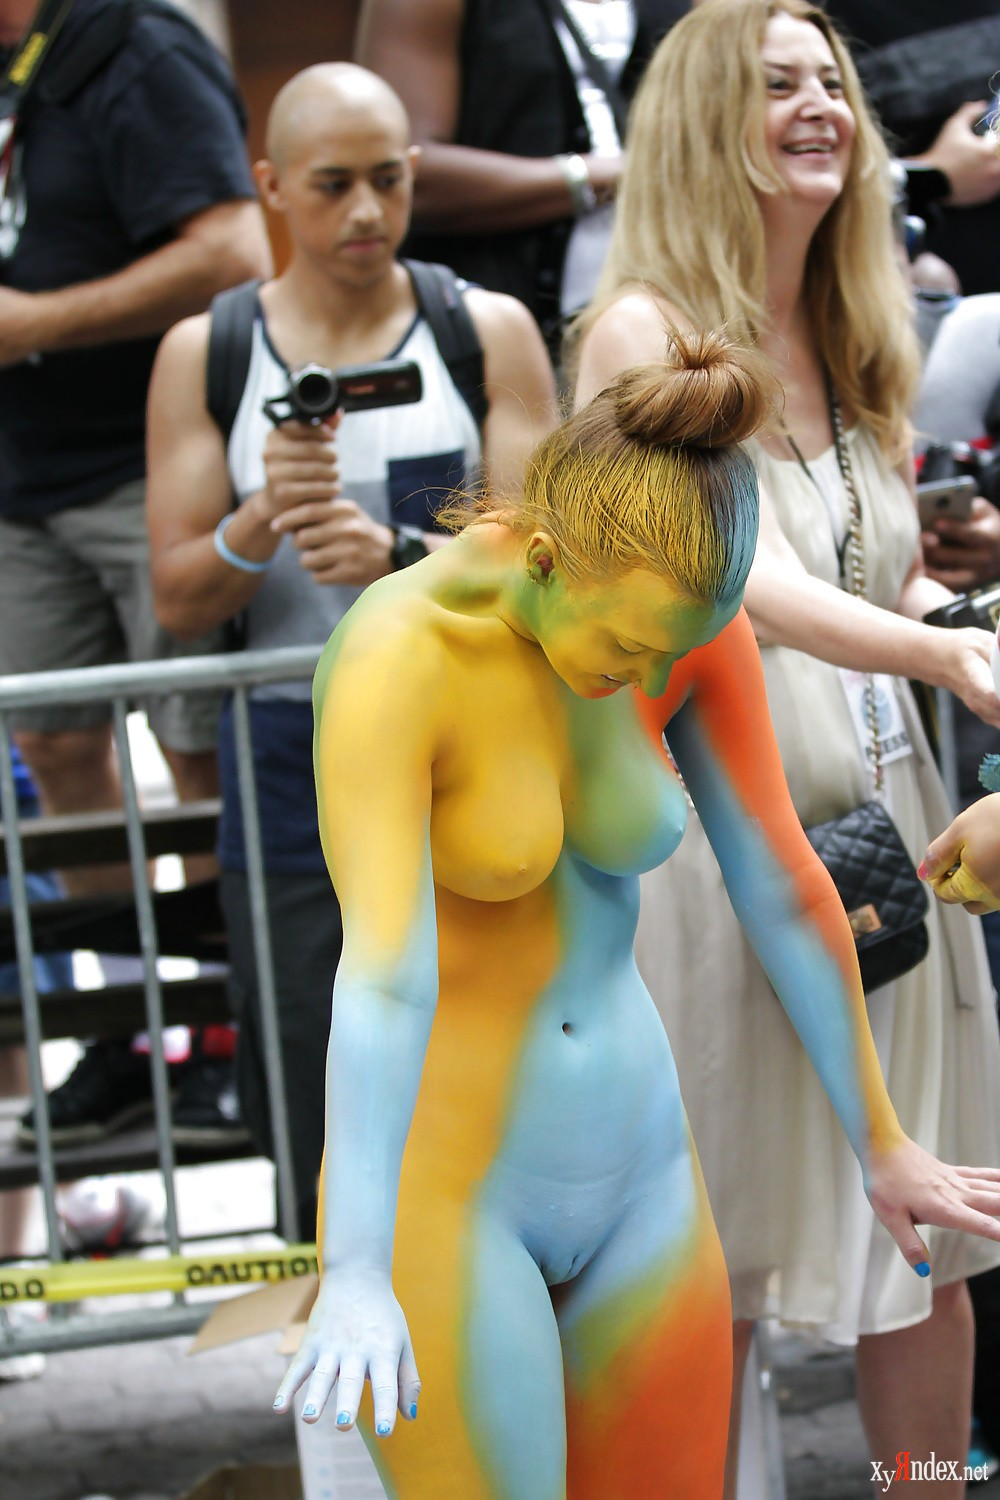 Free naked body painting porn pics